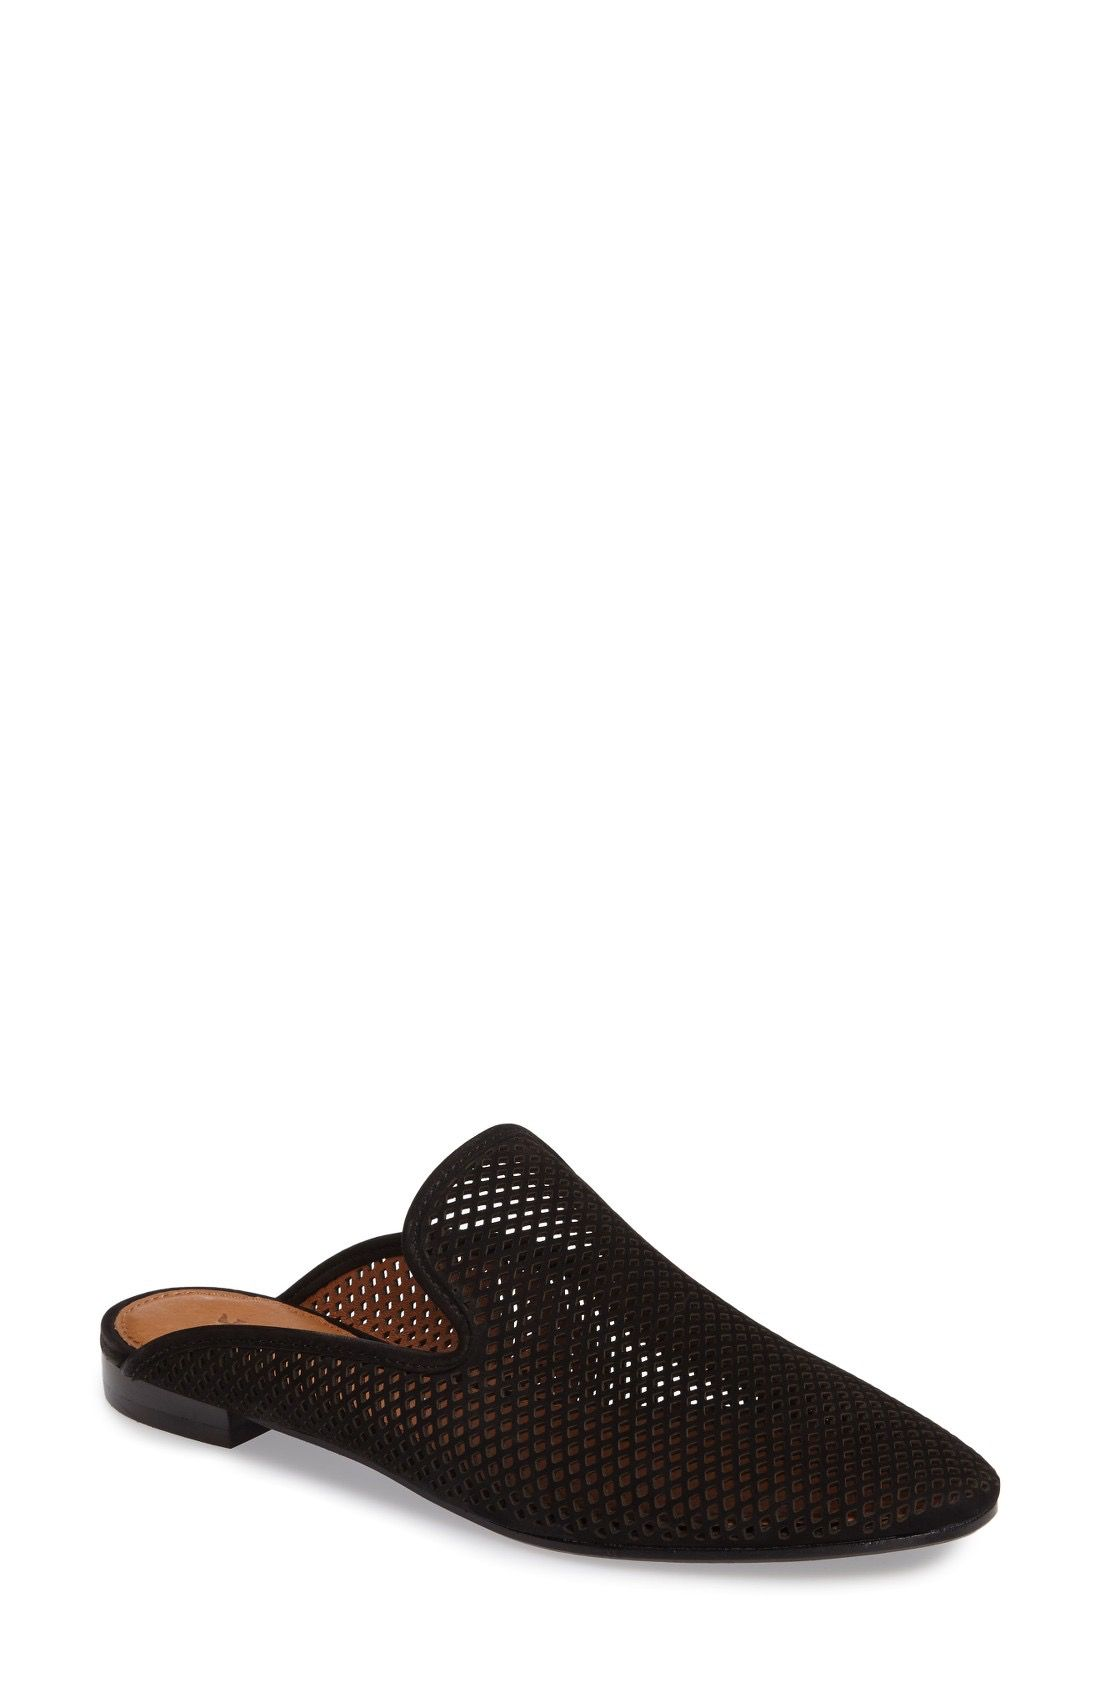 Frye Gwen Perforated Mule (Women) available at  Nordstrom  72f139a864